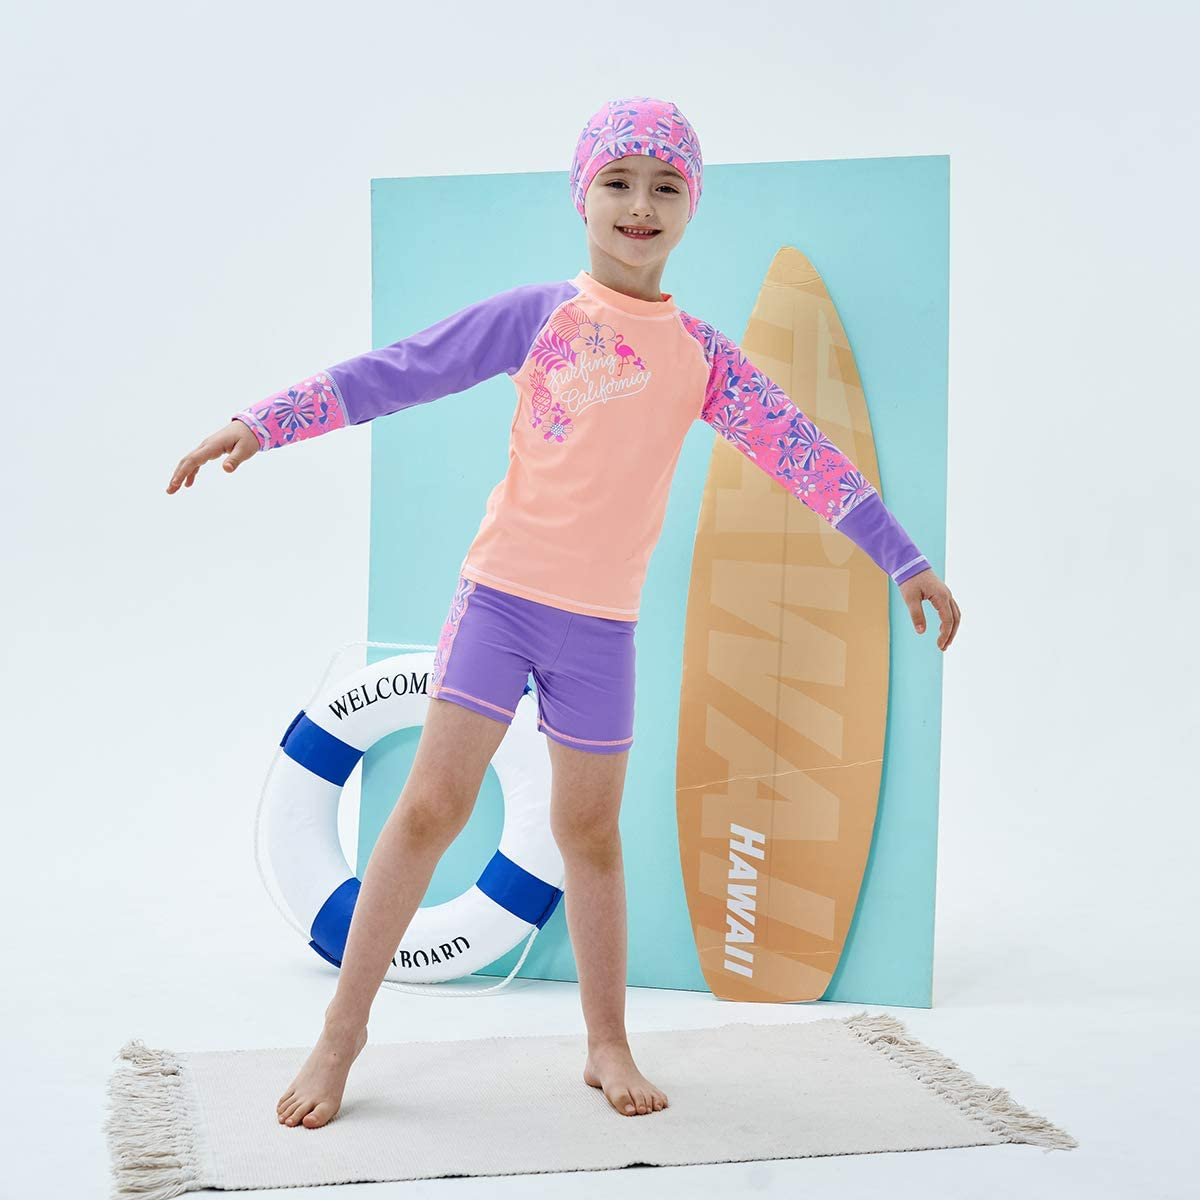 MGEOY Girls 2-Piece Swimsuit Long Sleeve Tankinis Rash Guard Sets for Kids